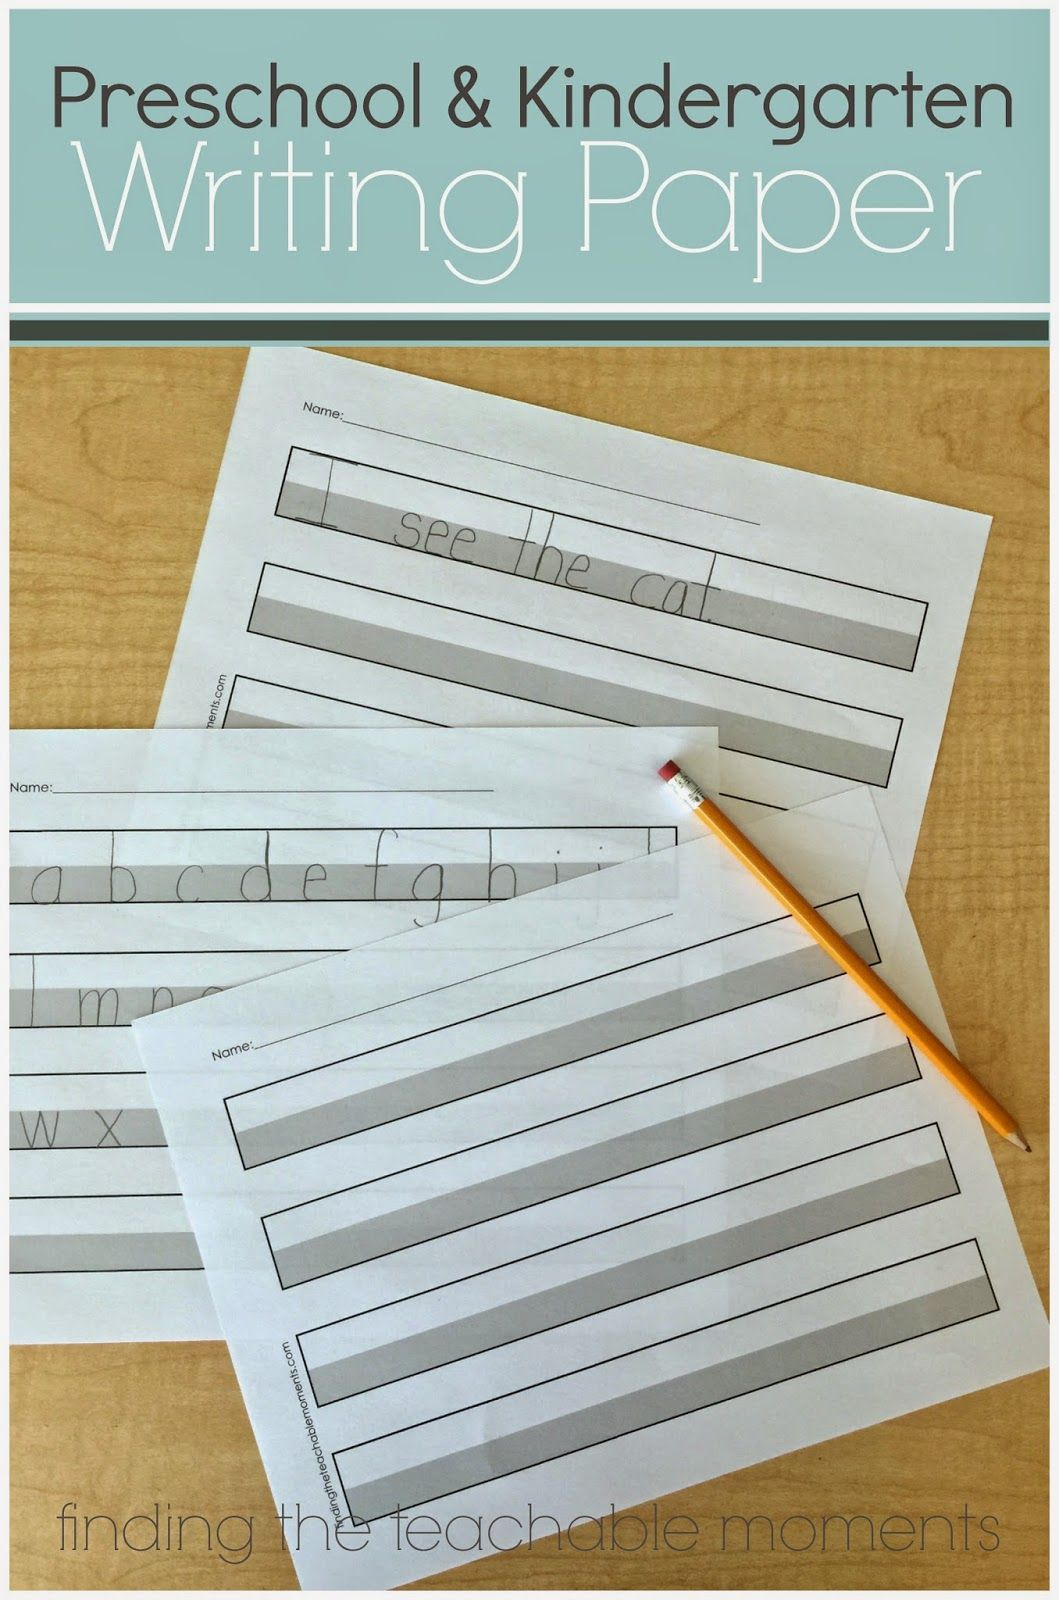 Free Printable Handwriting Paper For Preschool Or Kindergarten The Gray Area Provides A Visual